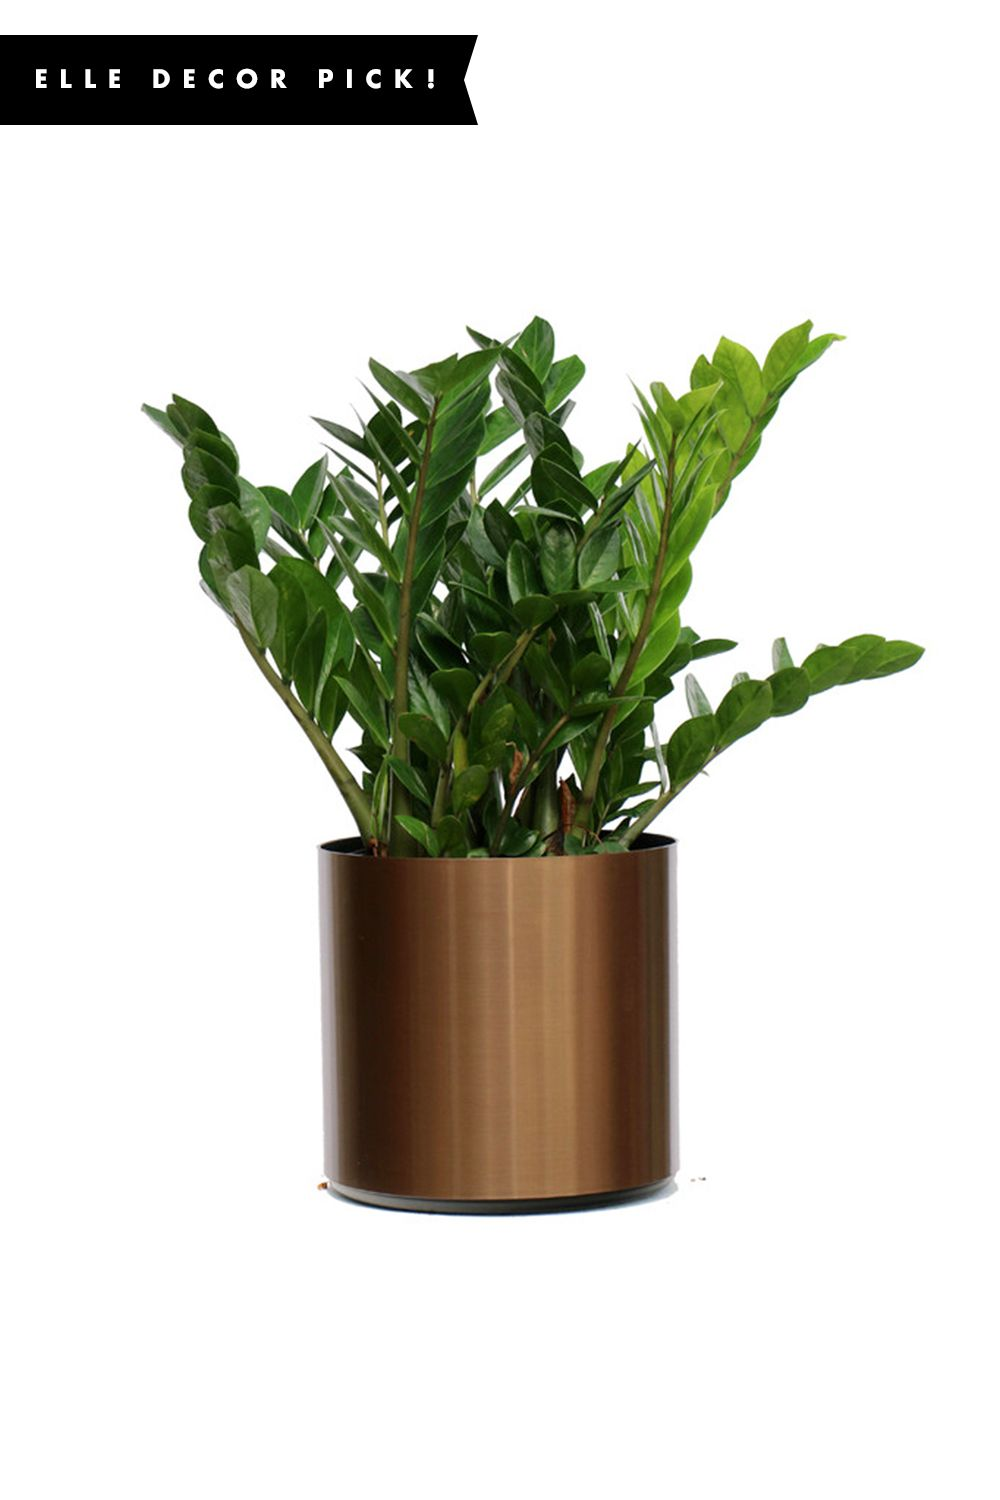 """<p>""""Trend alert: The ubiquitous fiddle leaf fig is being replaced by Zamioculcas Zamiifolia(or ZZ), the perfect companion for those chillier days ahead.<span class=""""redactor-invisible-space"""" data-verified=""""redactor"""" data-redactor-tag=""""span"""" data-redactor-class=""""redactor-invisible-space"""">""""</span></p><p><em data-redactor-tag=""""em"""" data-verified=""""redactor"""">SHOP NOW: Live 2' Zamioculcas Zamiifolia, $125; </em><a href=""""https://www.houzz.com/photos/74449443/Live-2-Zamioculcas-Zamiifolia-ZZ-Package-Bronze-contemporary-plants"""" target=""""_blank"""" data-tracking-id=""""recirc-text-link""""><em data-redactor-tag=""""em"""" data-verified=""""redactor"""">houzz.com</em></a></p>"""